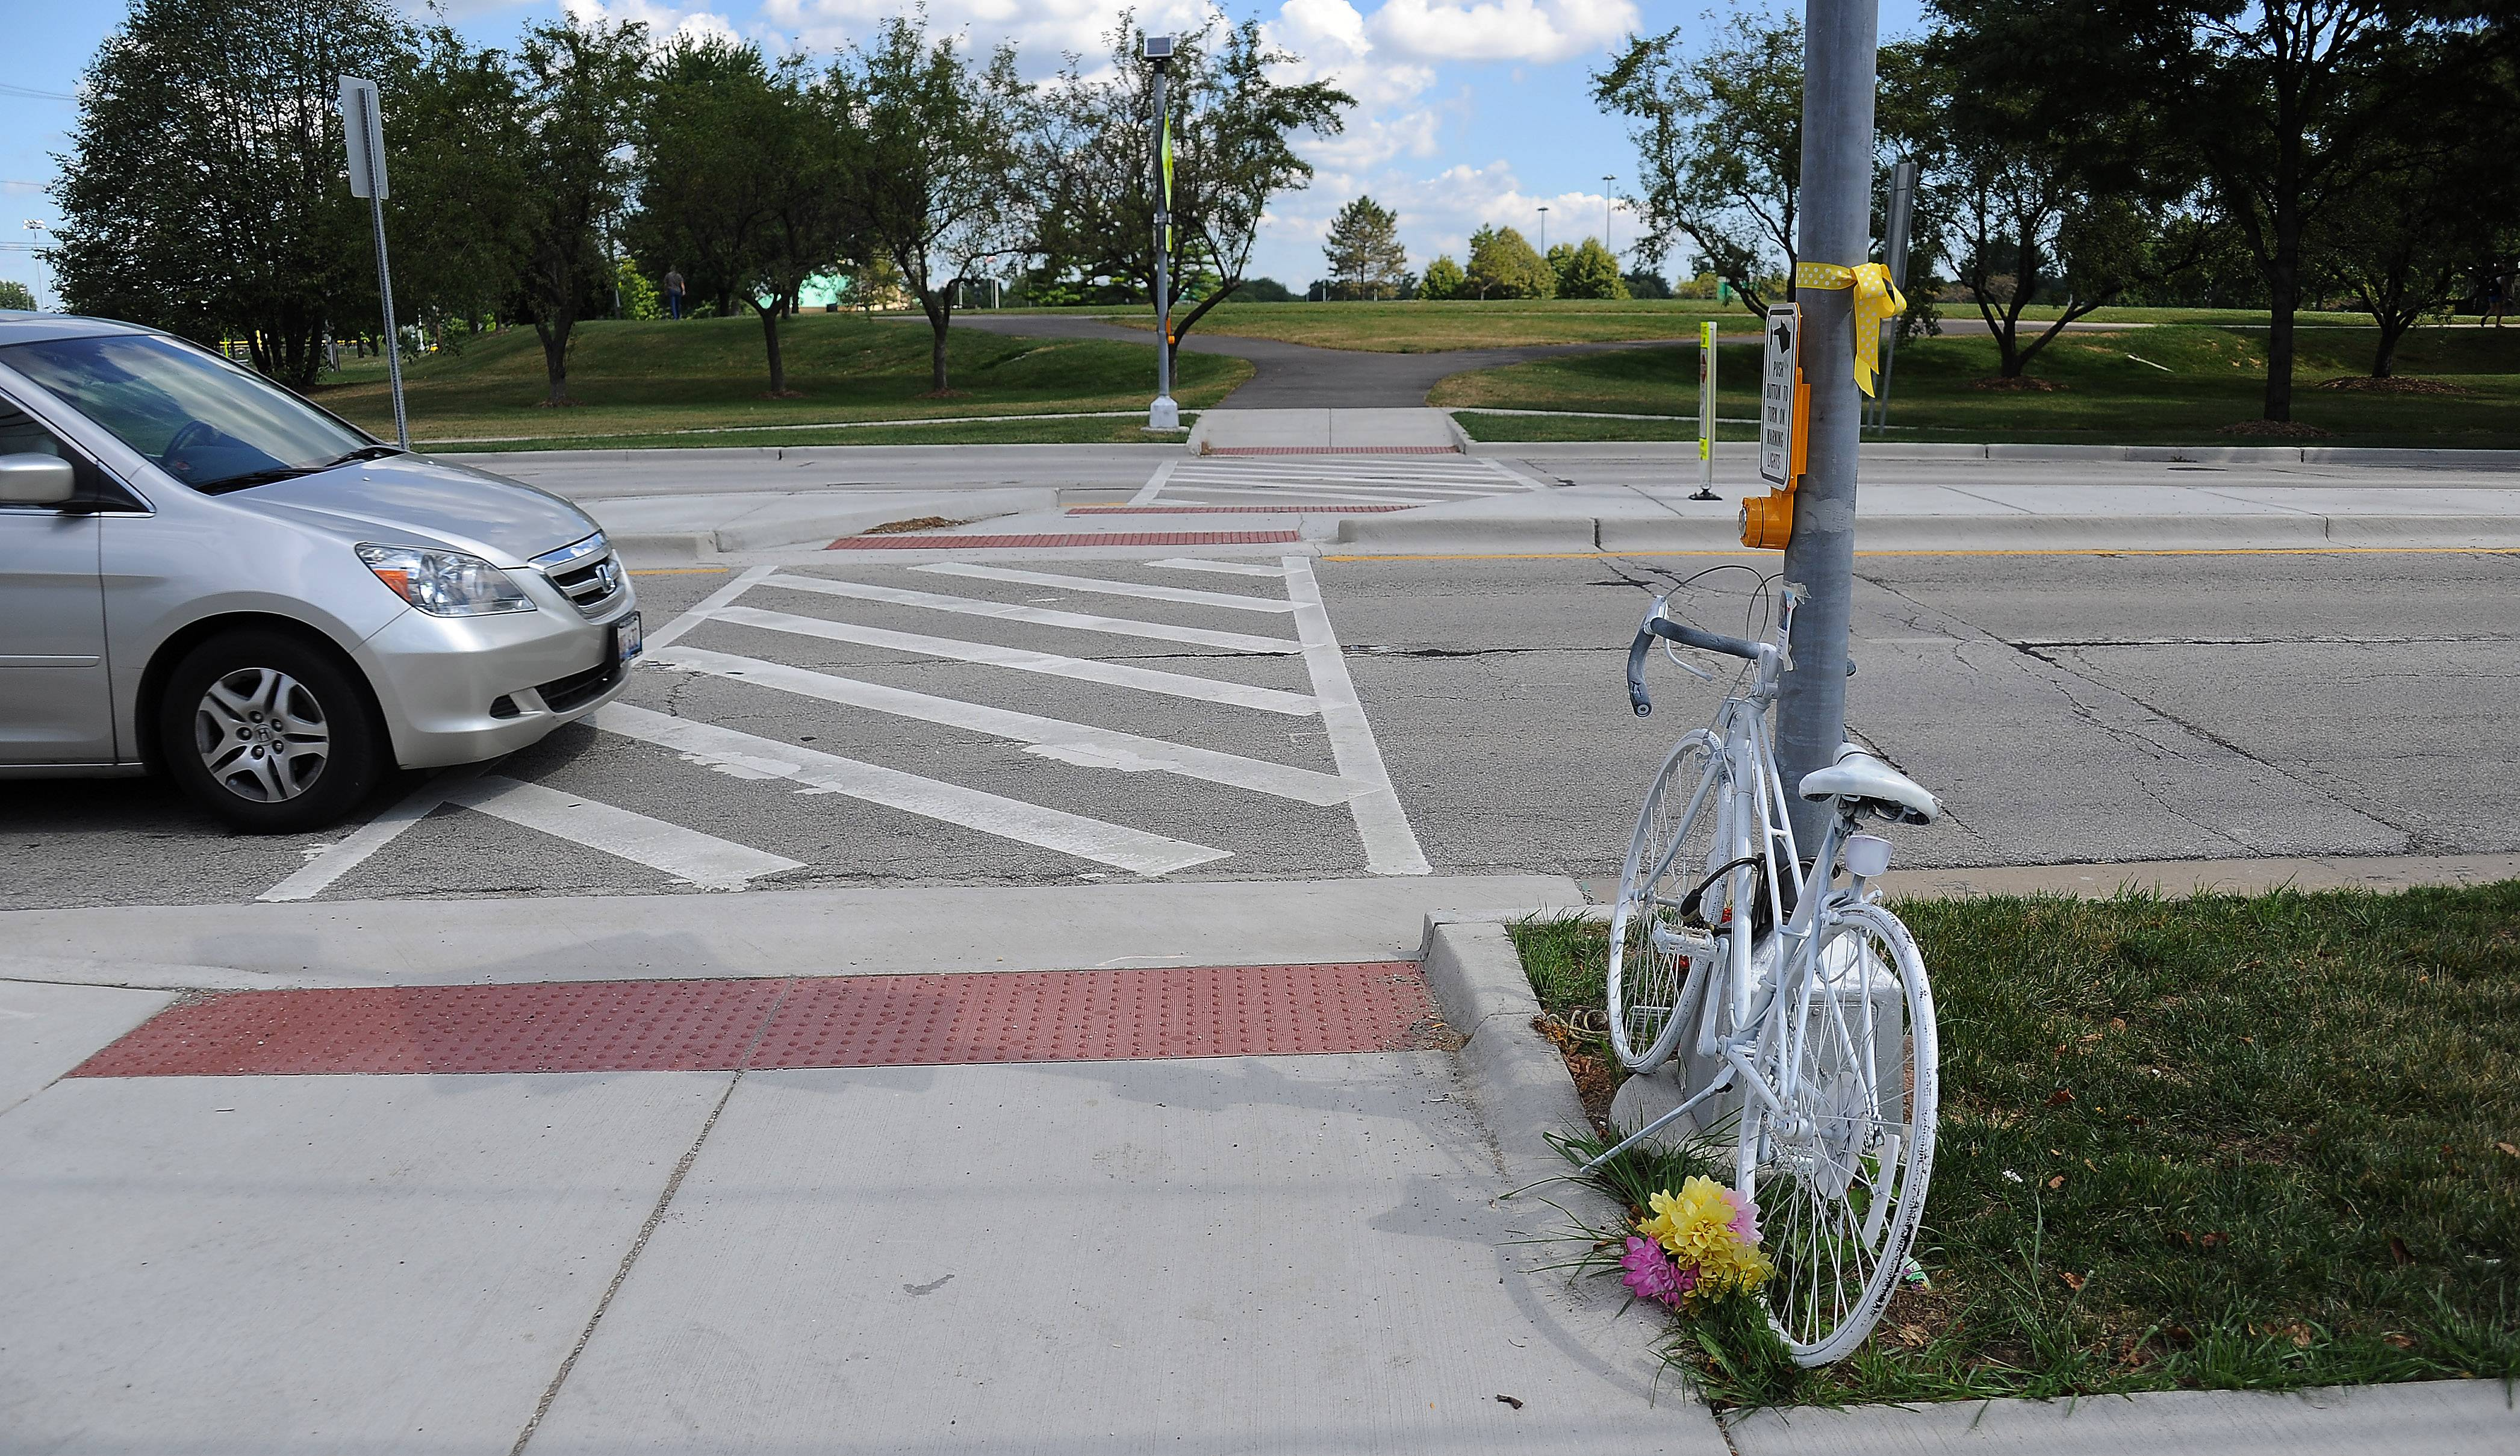 IDOT leader on crosswalk safety: We've got to rethink it